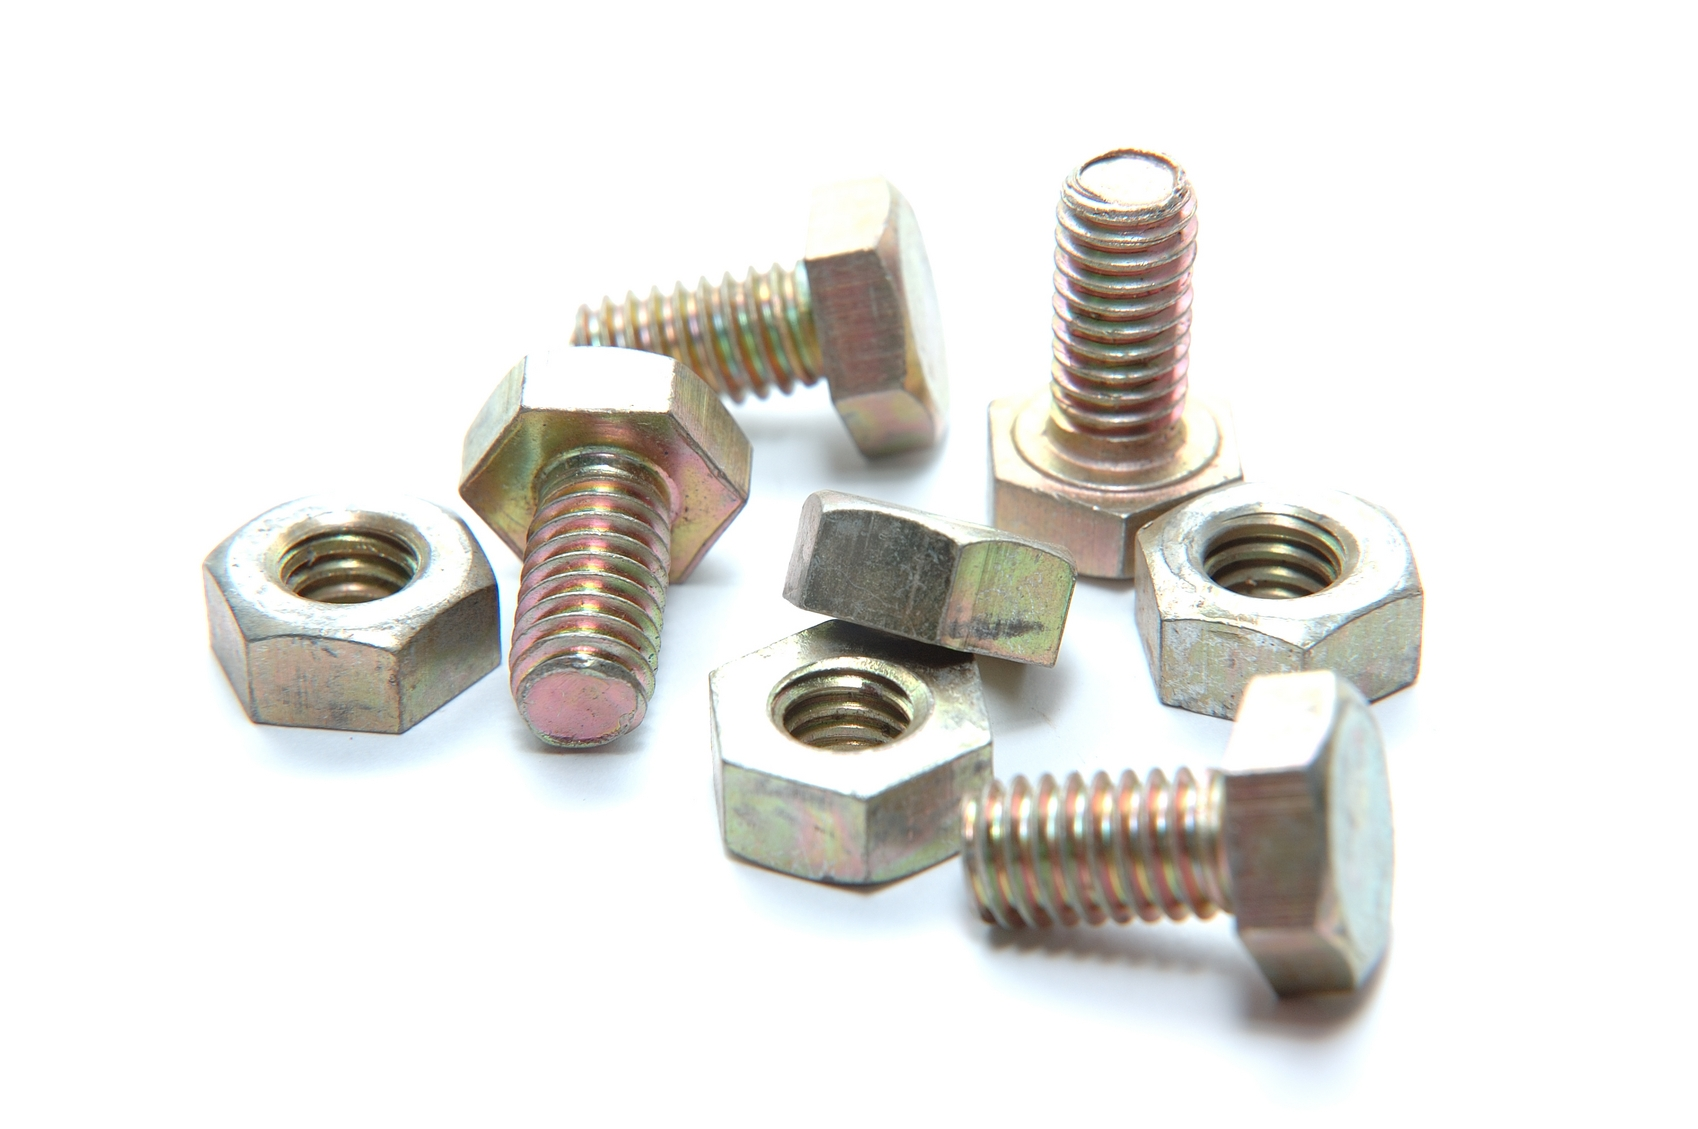 Copper Nuts And Bolts >> South Florida Sign Company 12 Count Nuts And Bolts Set 24 Pieces